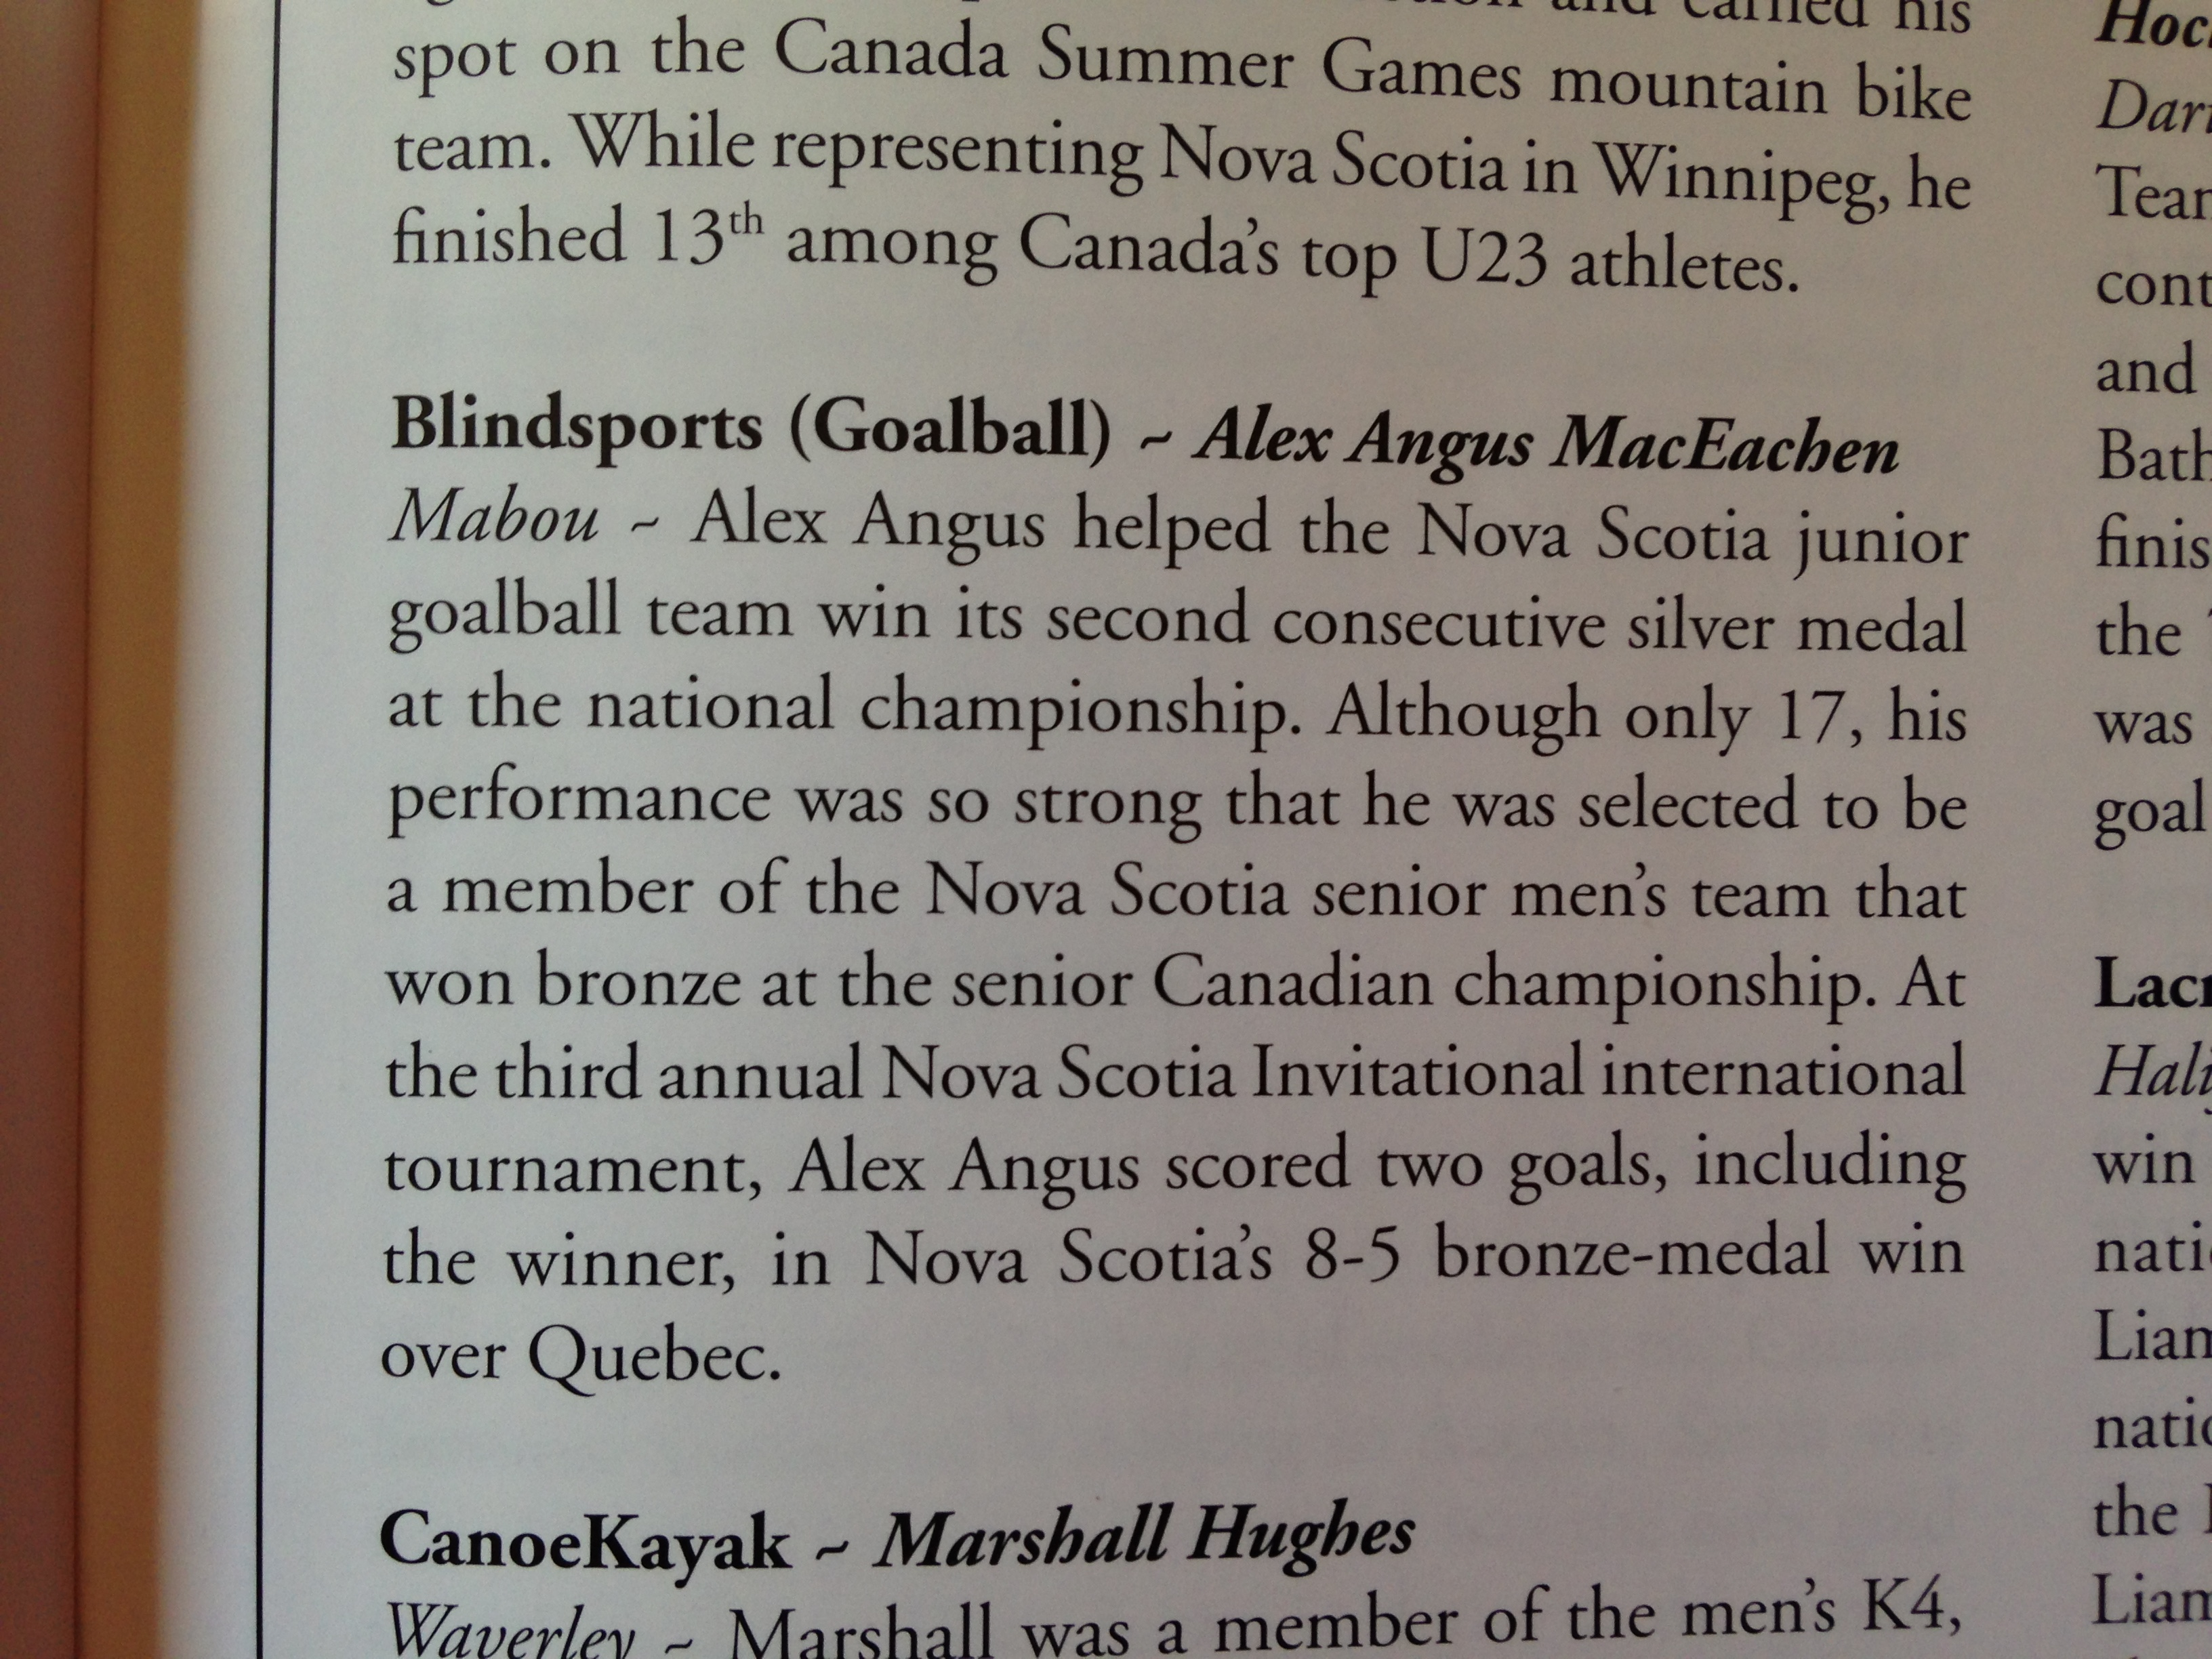 Male Team Athlete of the Year - AlexAngus MacEachen, Mabou Alex Angus helped the Nova Scotia junior goalball team win its second consecutive silver medal at the national championships. Although only 17, his performance was so strong that he was selected to be a member of the Nova Scotia senior men's team that won bronze at the senior Canadian championship. At the third annual Nova Scotia Invitational championship, Alec Angus scored two goals, including the winner in Nova Scotia's 8-5 bronze medal win over Quebec.